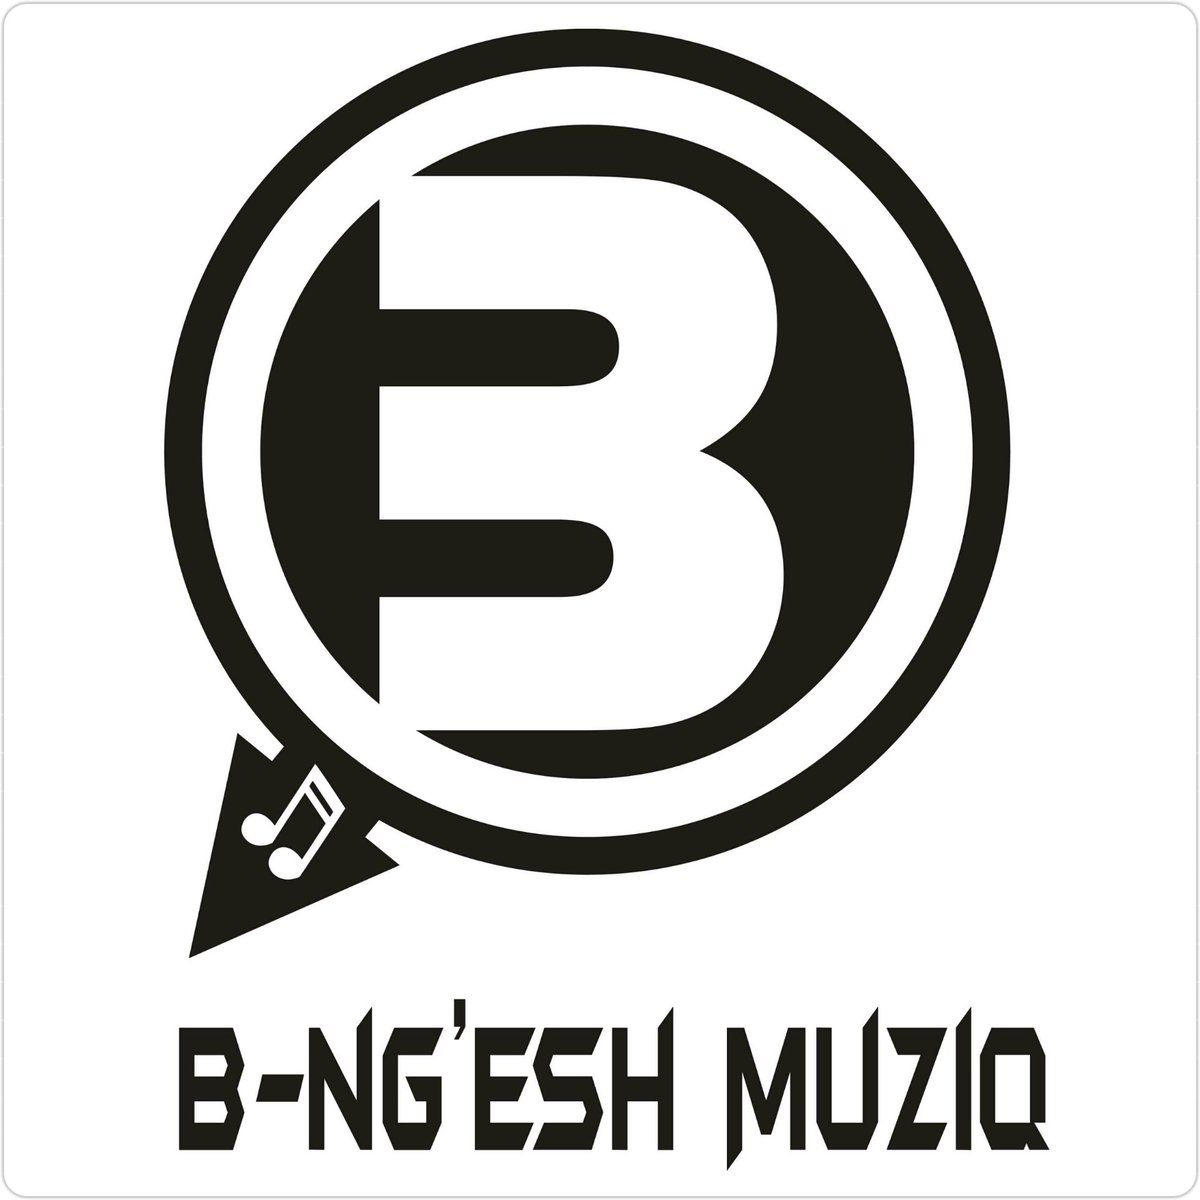 Kindly subscribe to my new YouTube channel. #B-NG&#39;ESH MUSIQ# <br>http://pic.twitter.com/vKF5CI0m29